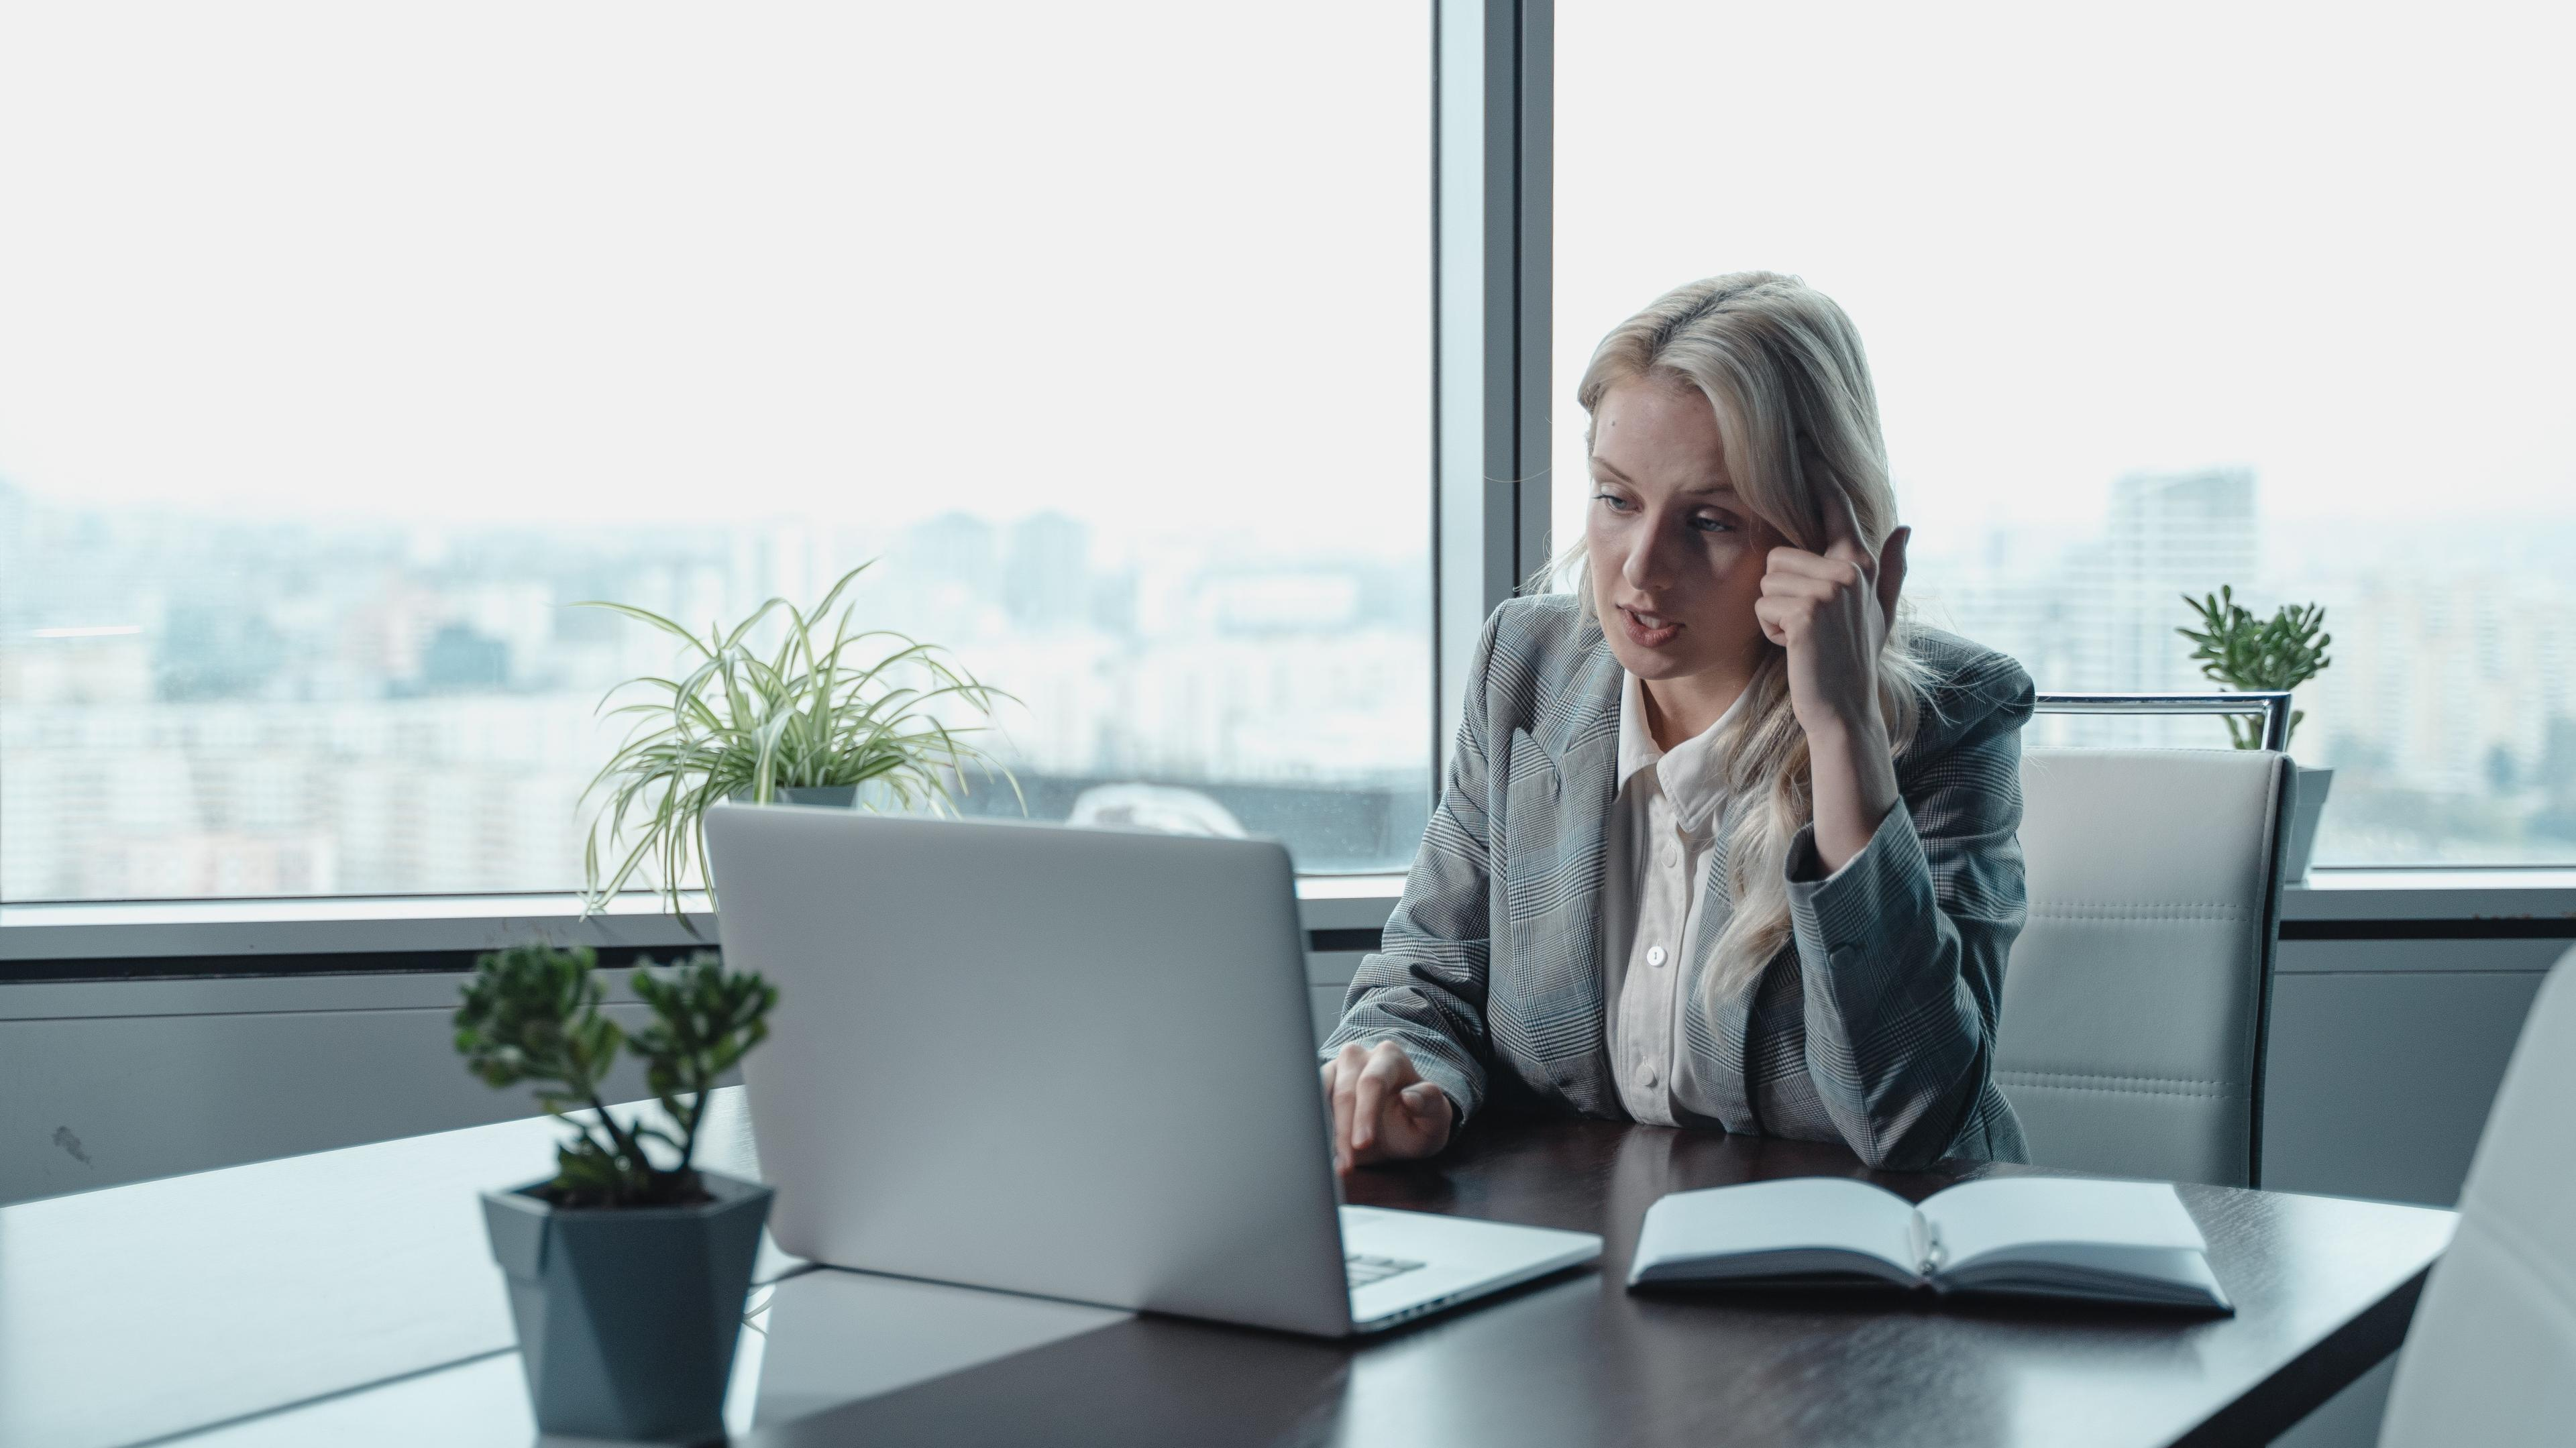 Woman in an office working